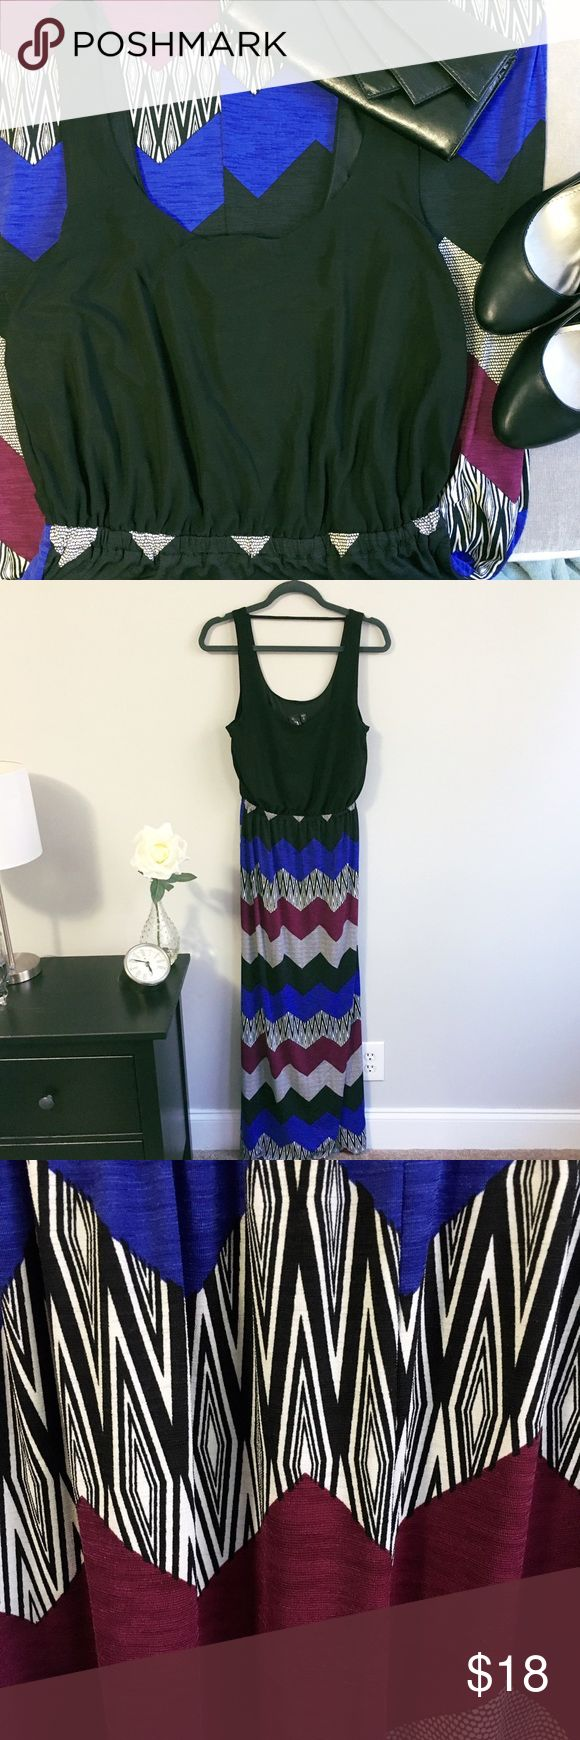 Tribal maxi dress Tribal maxi dress, black top and colorful tribal print bottom. This dress can be dressed up or down, very versatile! Worn once, great condition!! Dresses Maxi